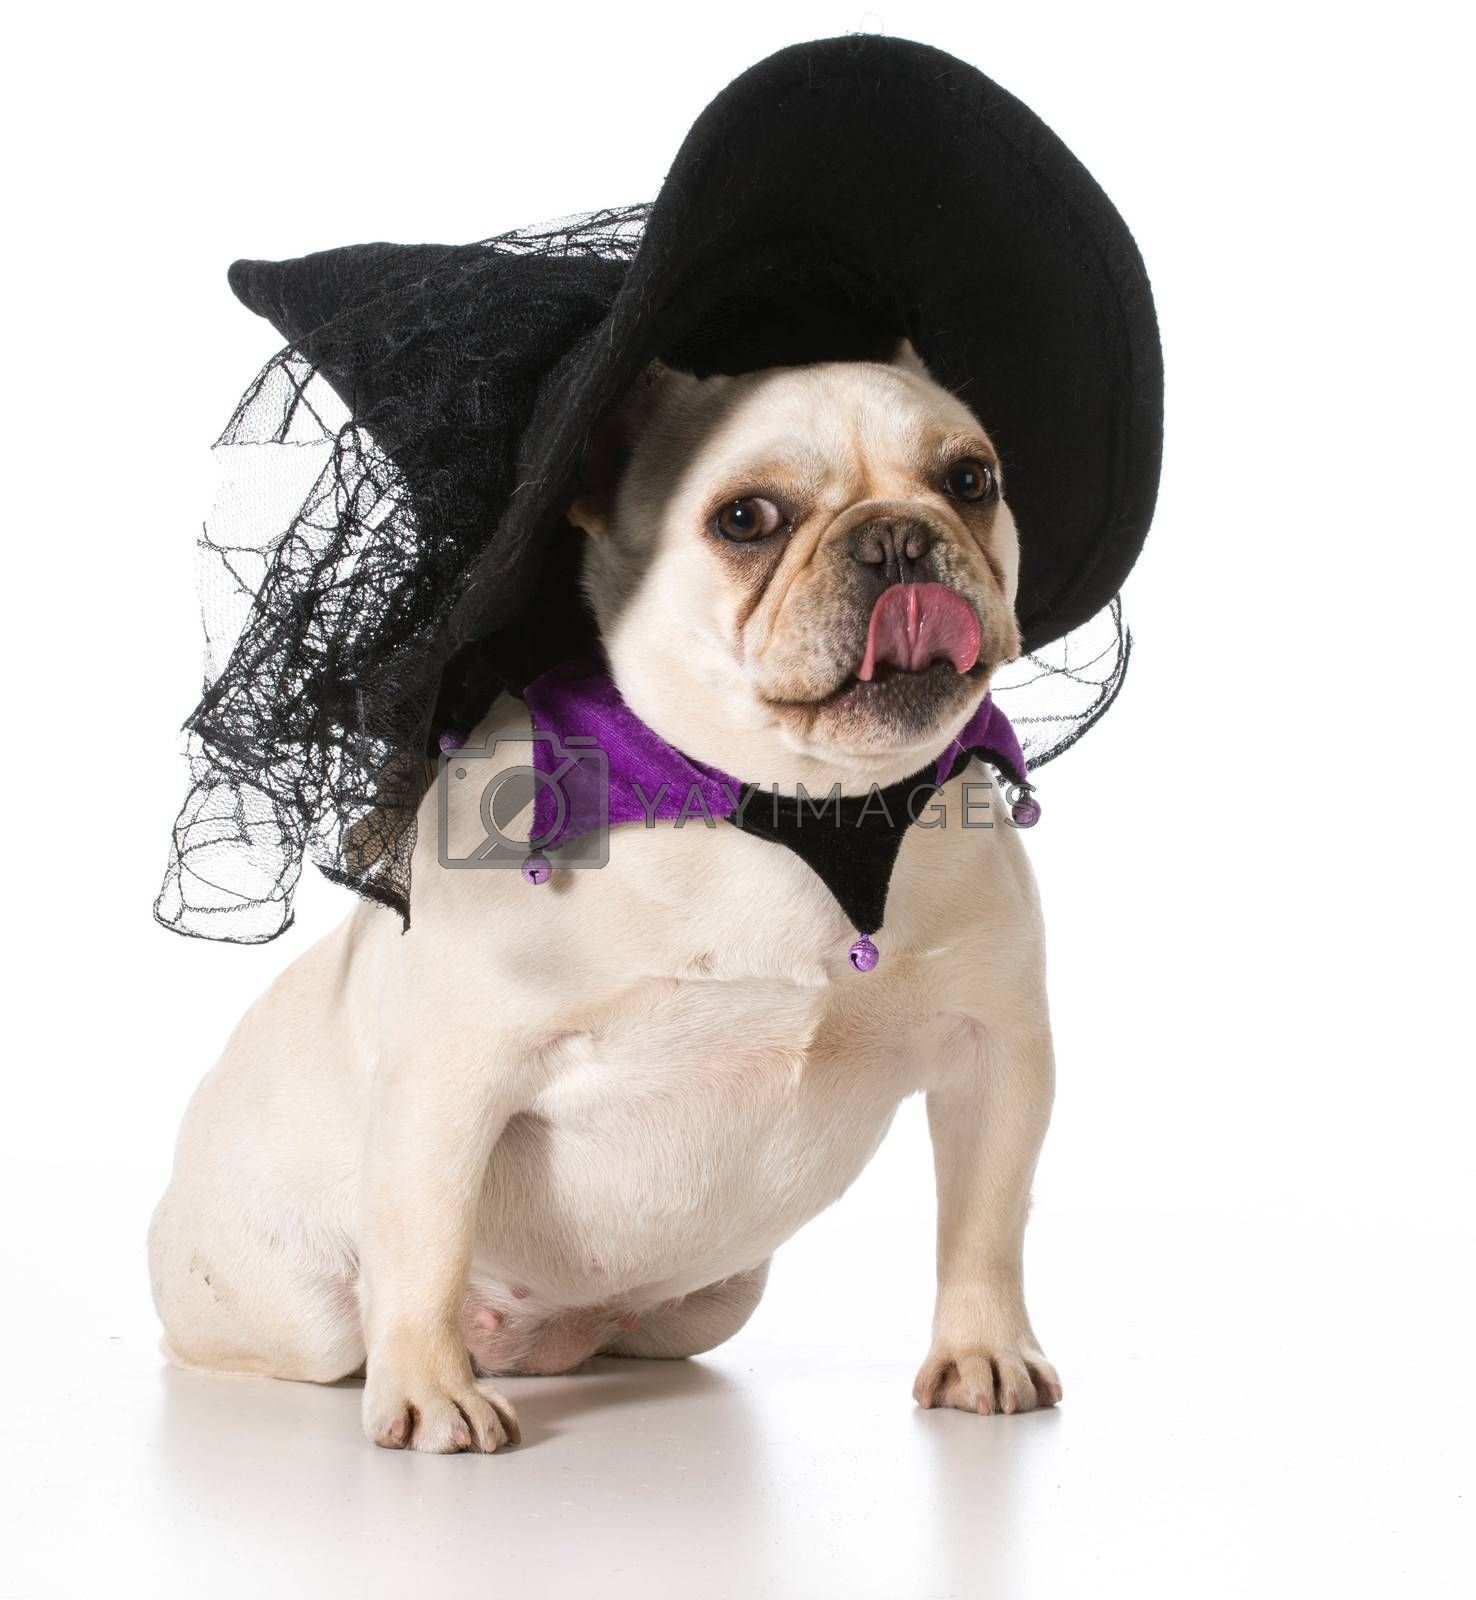 Royalty free image of dog dressed like a witch by willeecole123